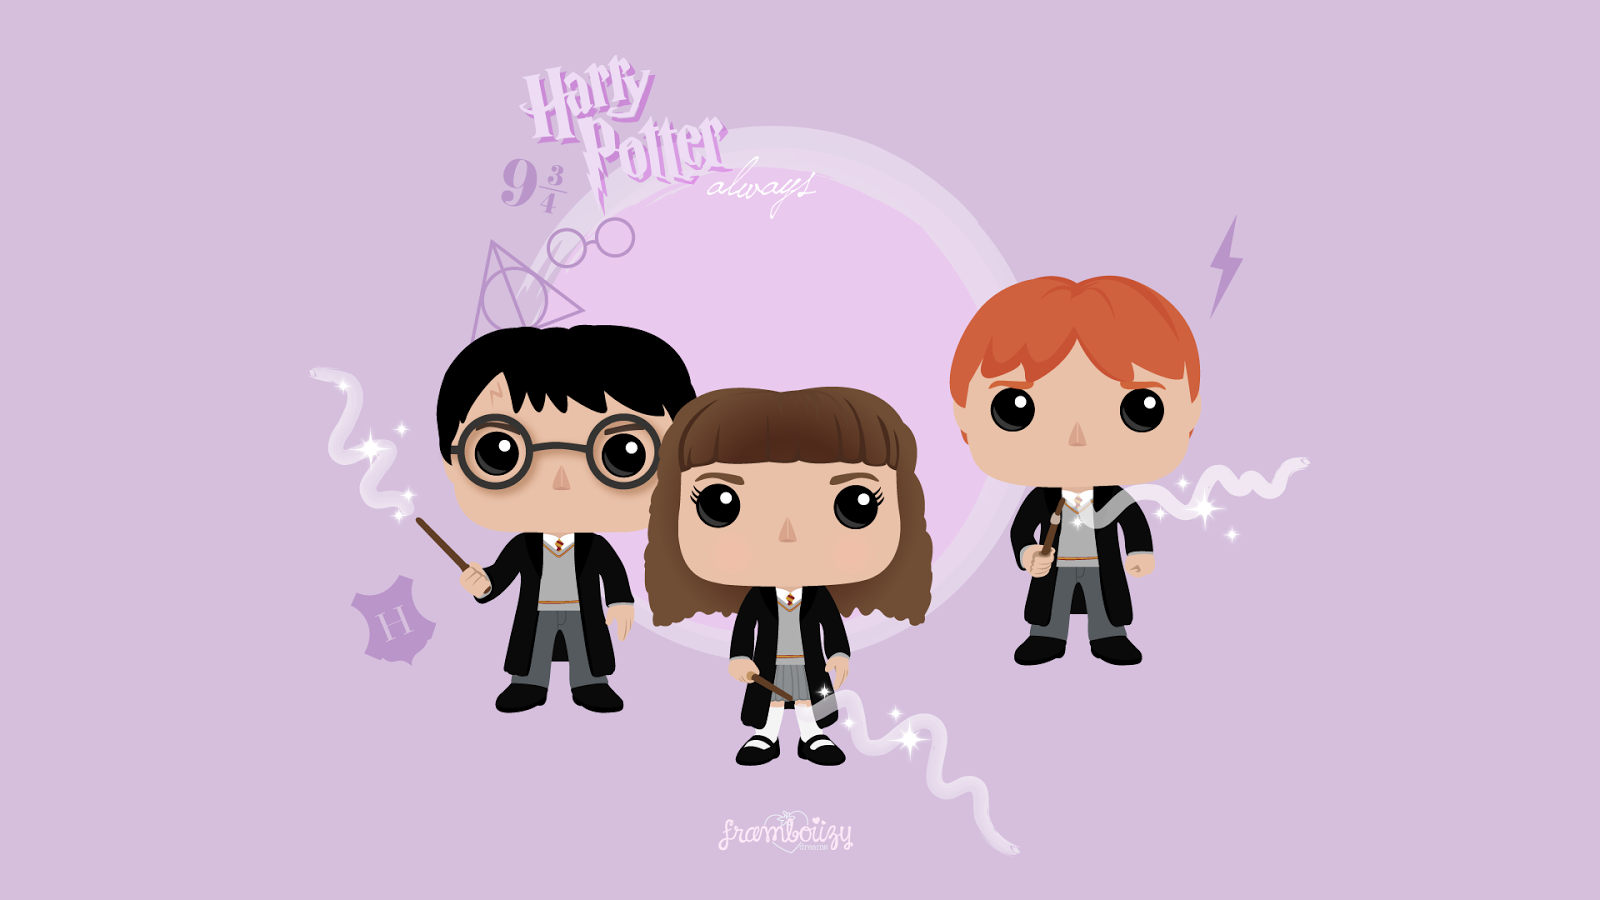 Good Wallpaper Harry Potter Animated - 4e4333bae52460ebe5ce310ceae153b1  Trends_3135.png